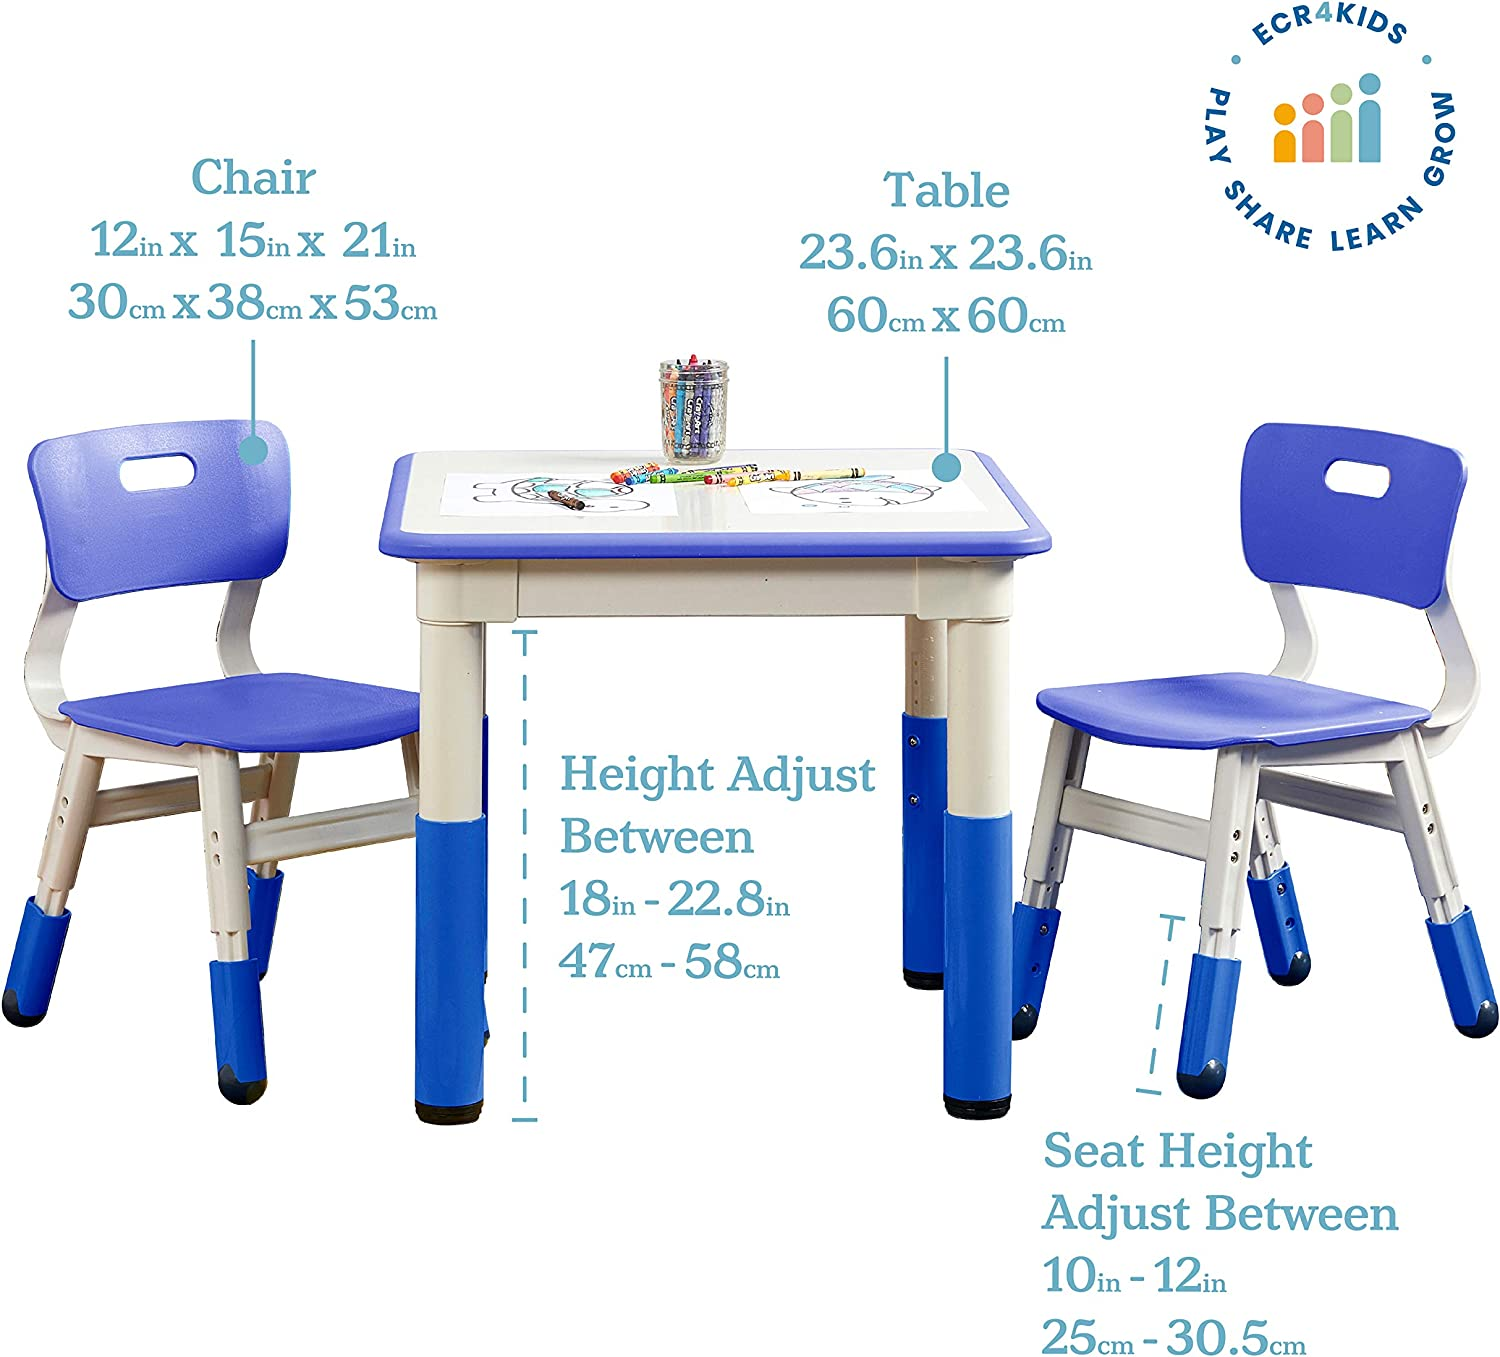 Amazon Com Ecr4kids Square Resin Dry Erase Activity Table With 2 Chairs Indoor Kids Plastic Adjustable Table And Chair Set For Classrooms Daycares Homes Cornflower Blue 3 Piece Set Toys Games